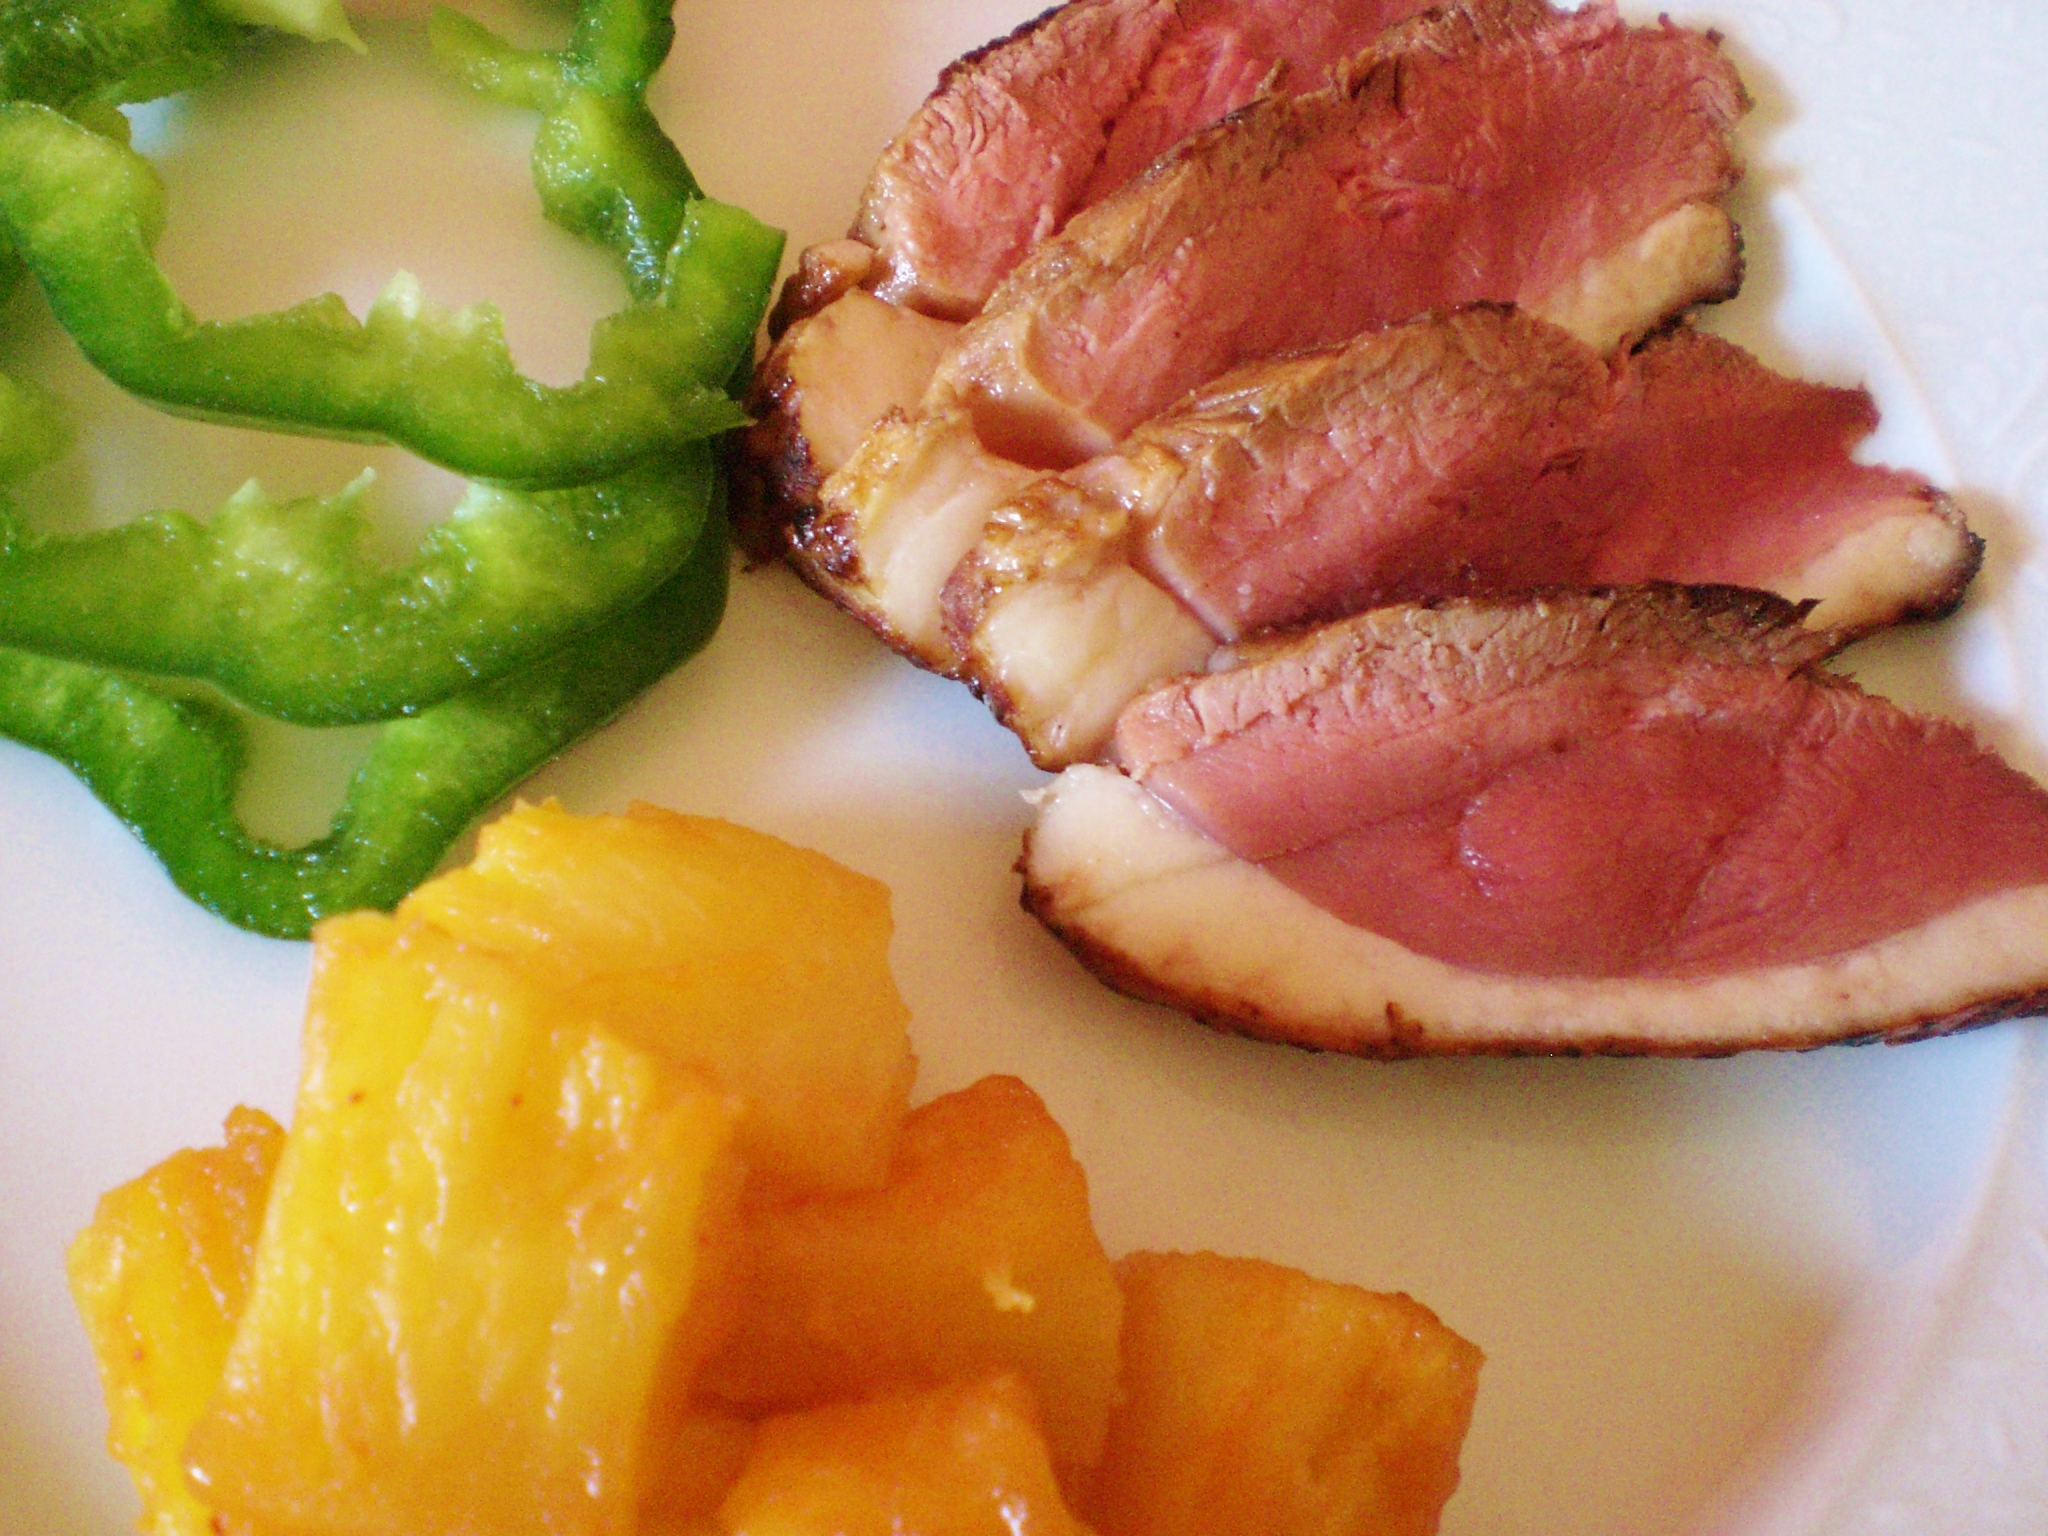 Boneless duck breast pieces